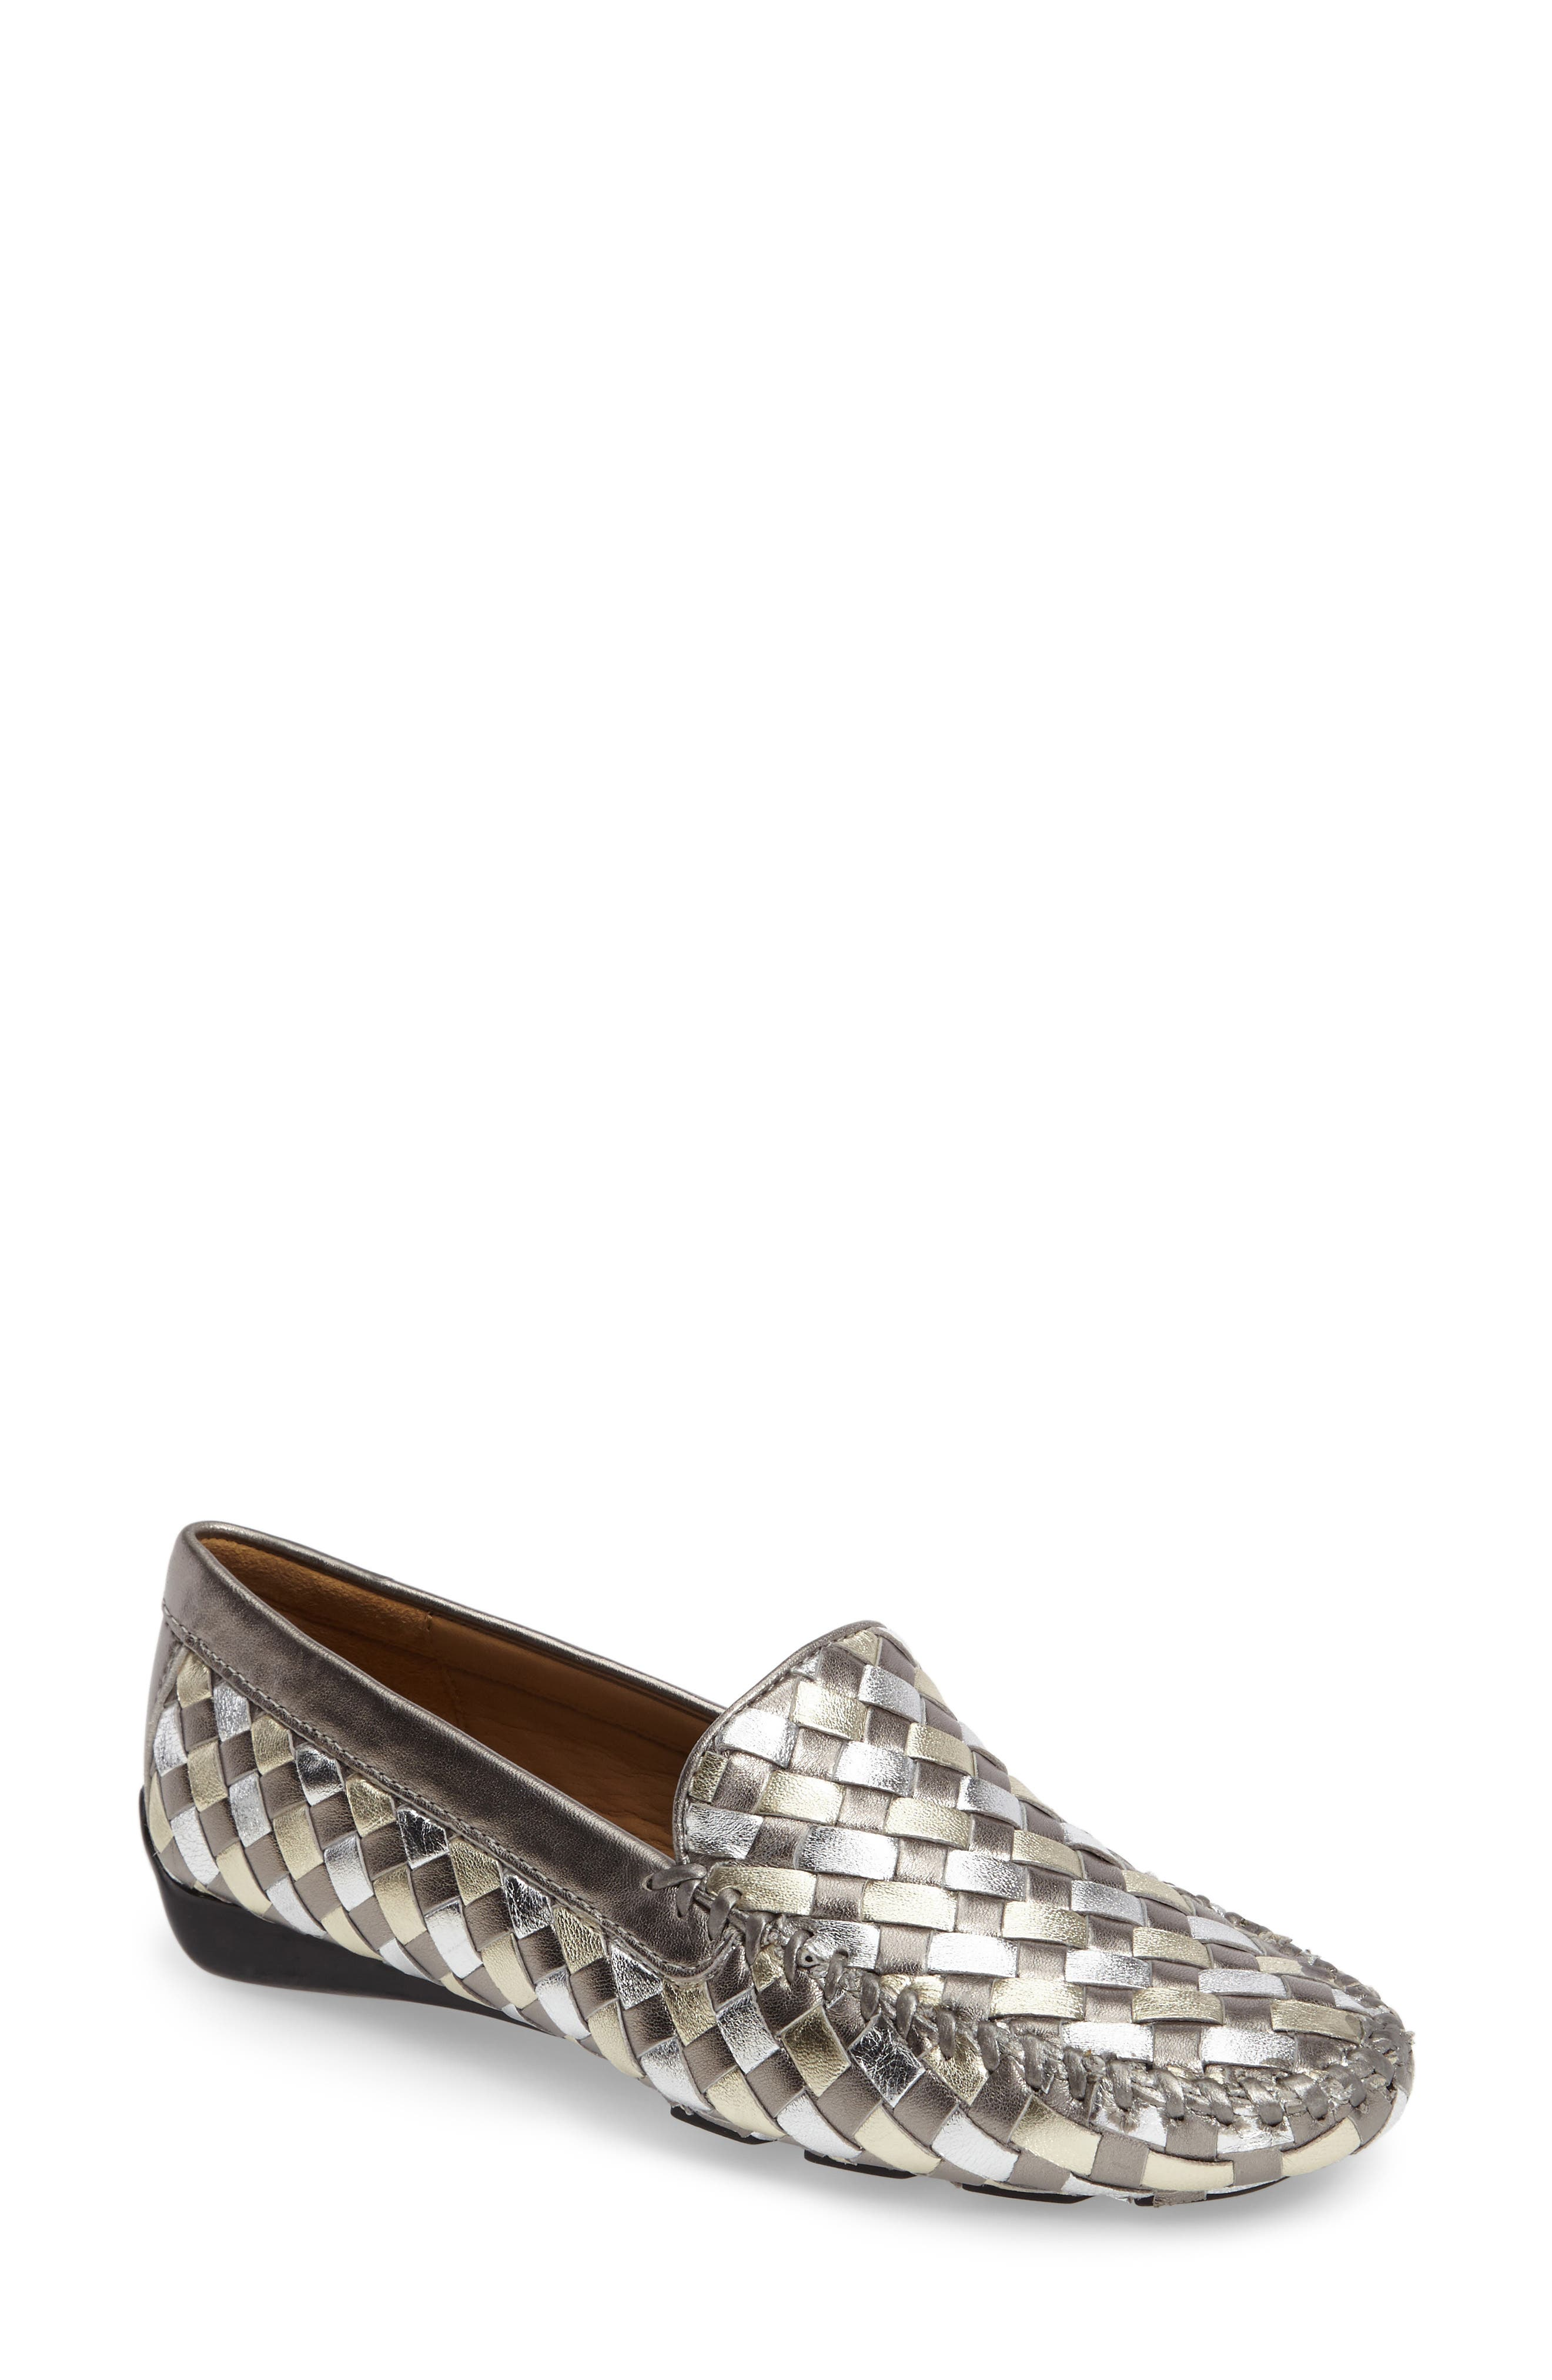 Main Image - Robert Zur Woven Venetian Loafer (Women)